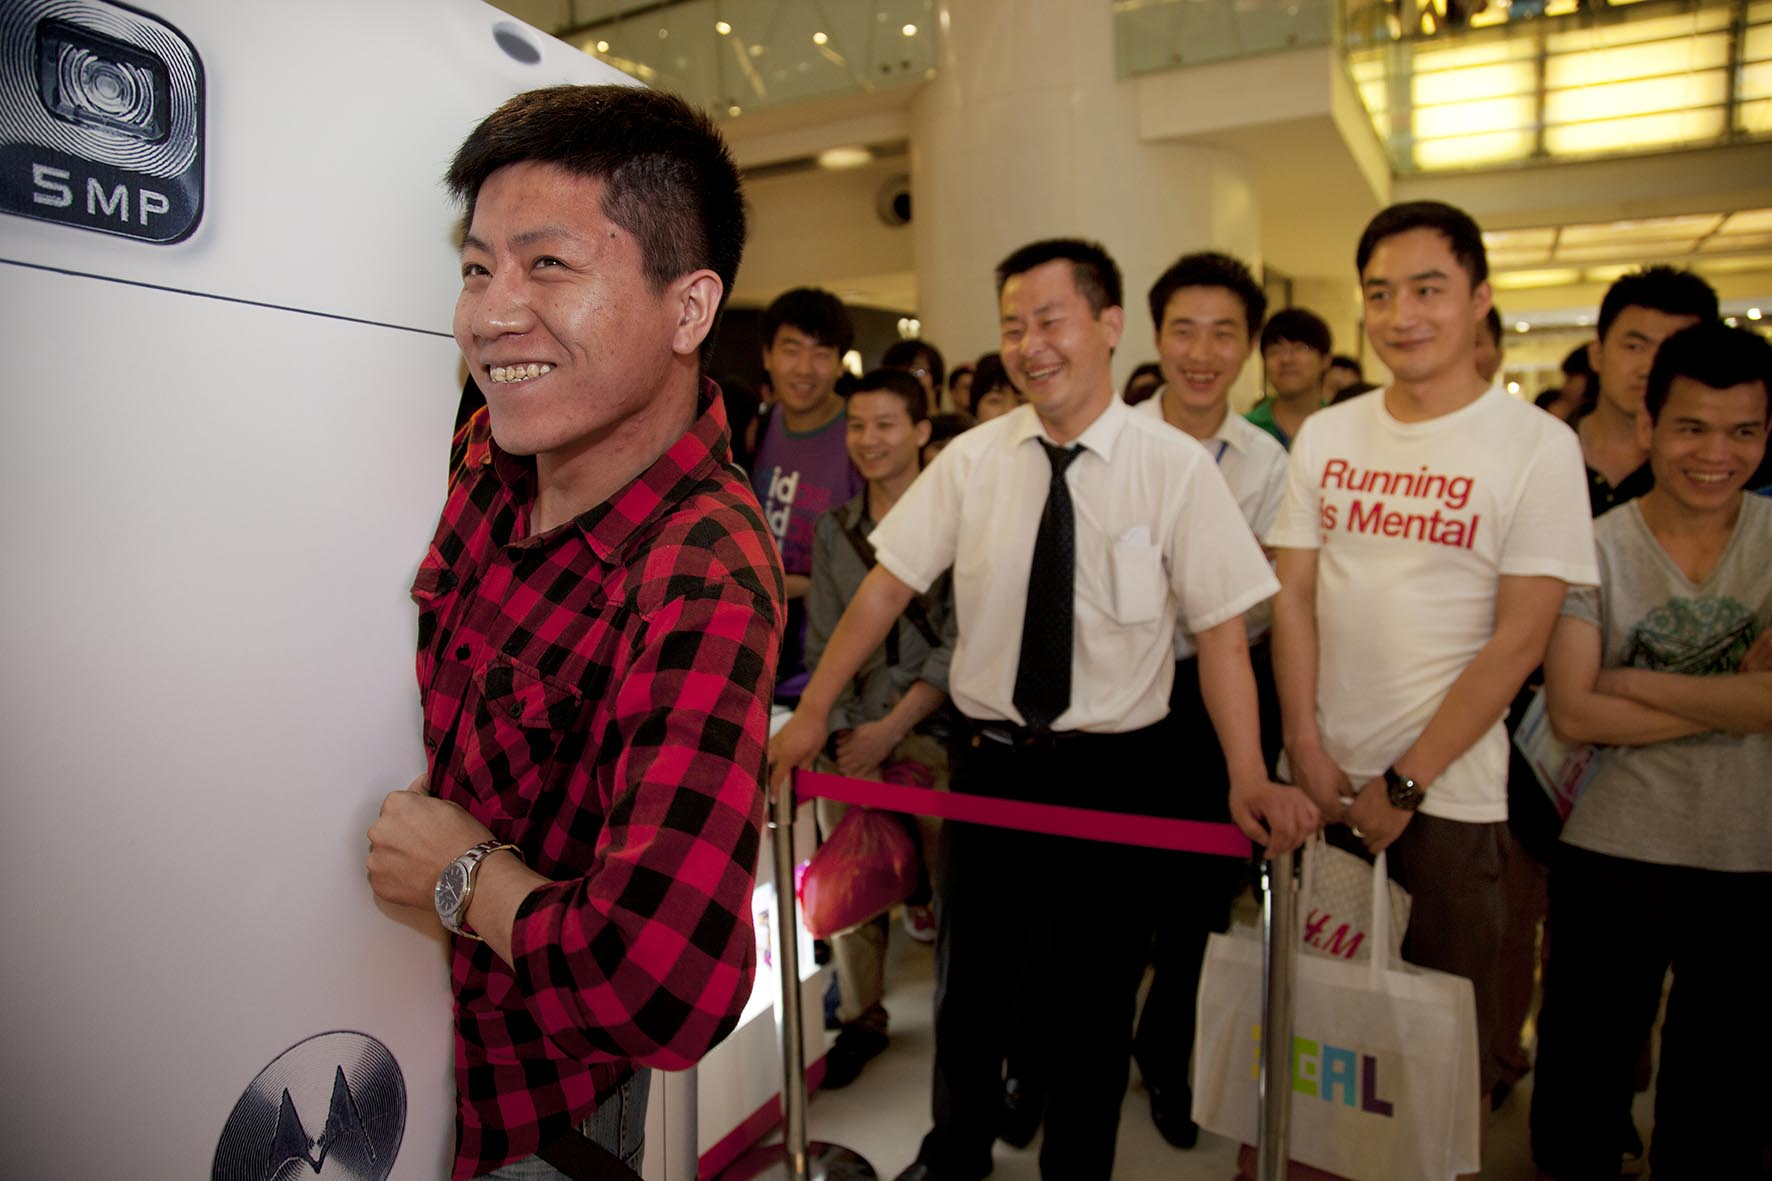 Man squeezes through a large model Motorola cell phone in order to win a handset. Skinny winners at Joy City shopping mall.